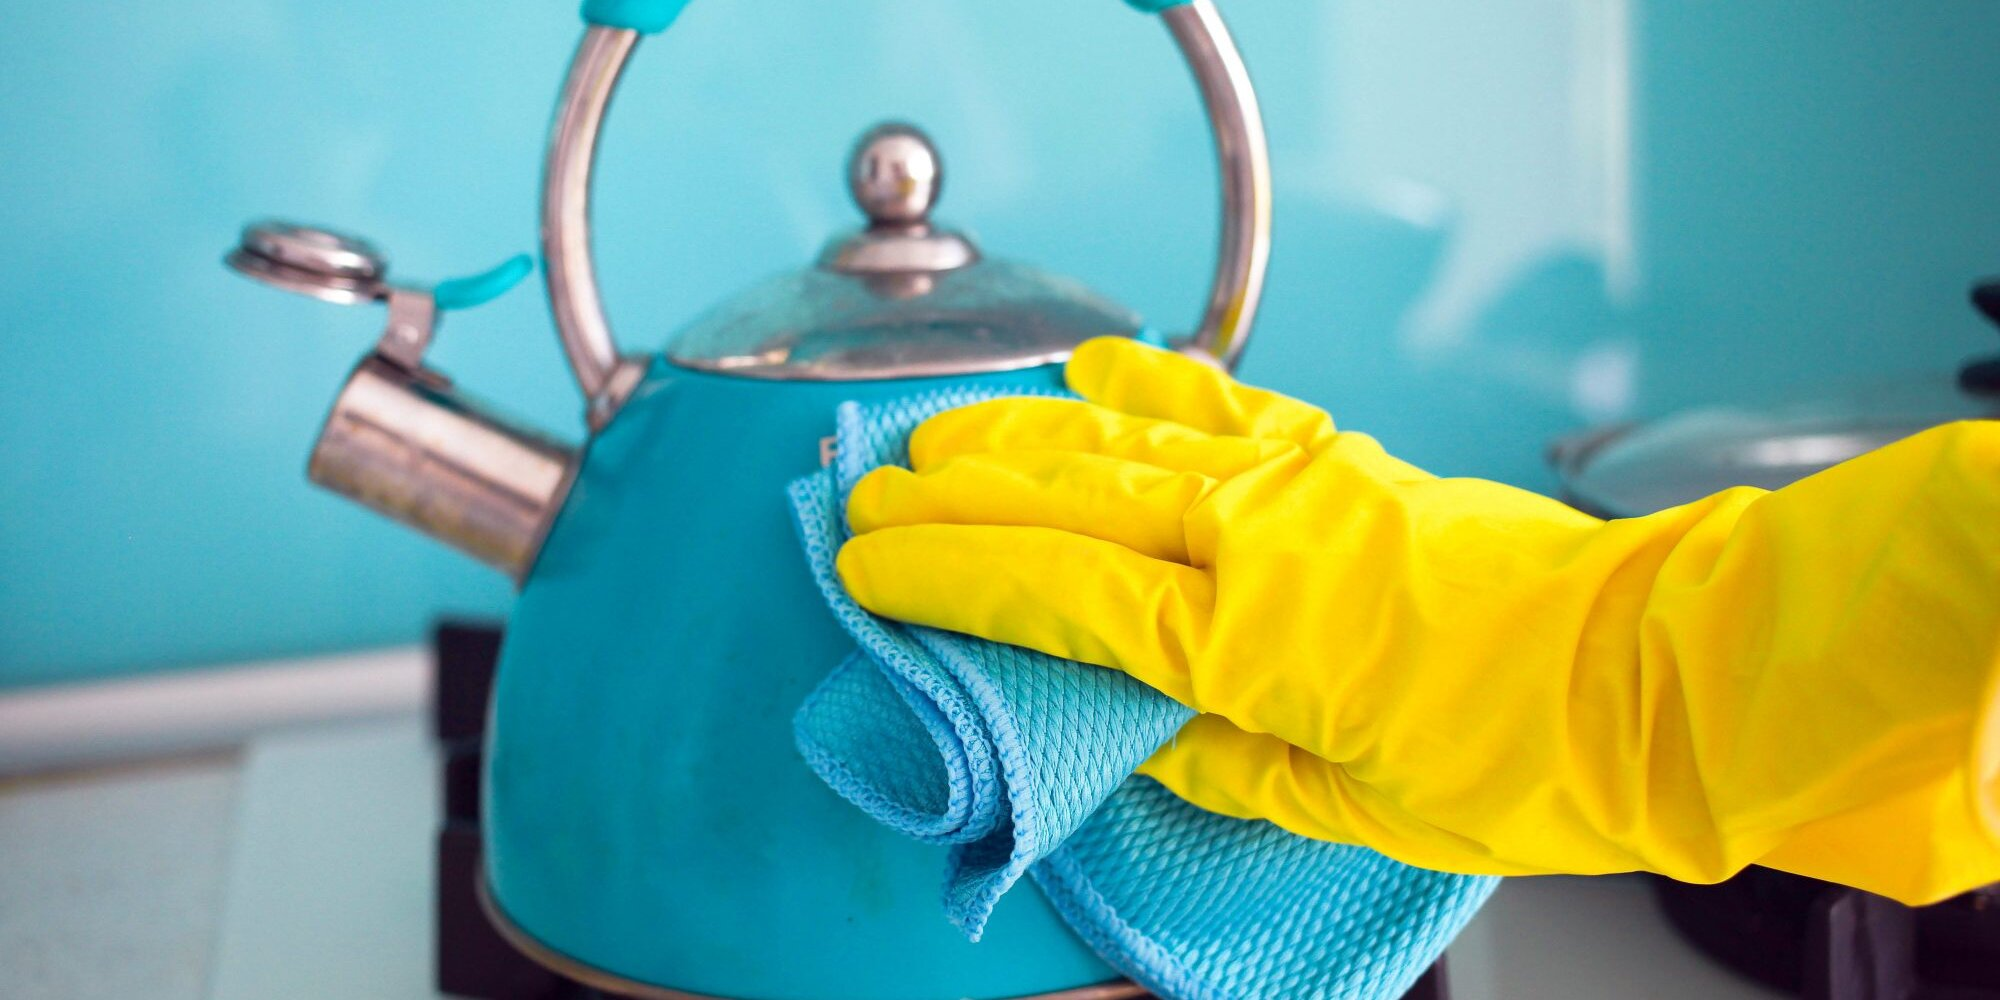 5 Viral Cleaning Hacks That Are Actually Legit, According to Experts